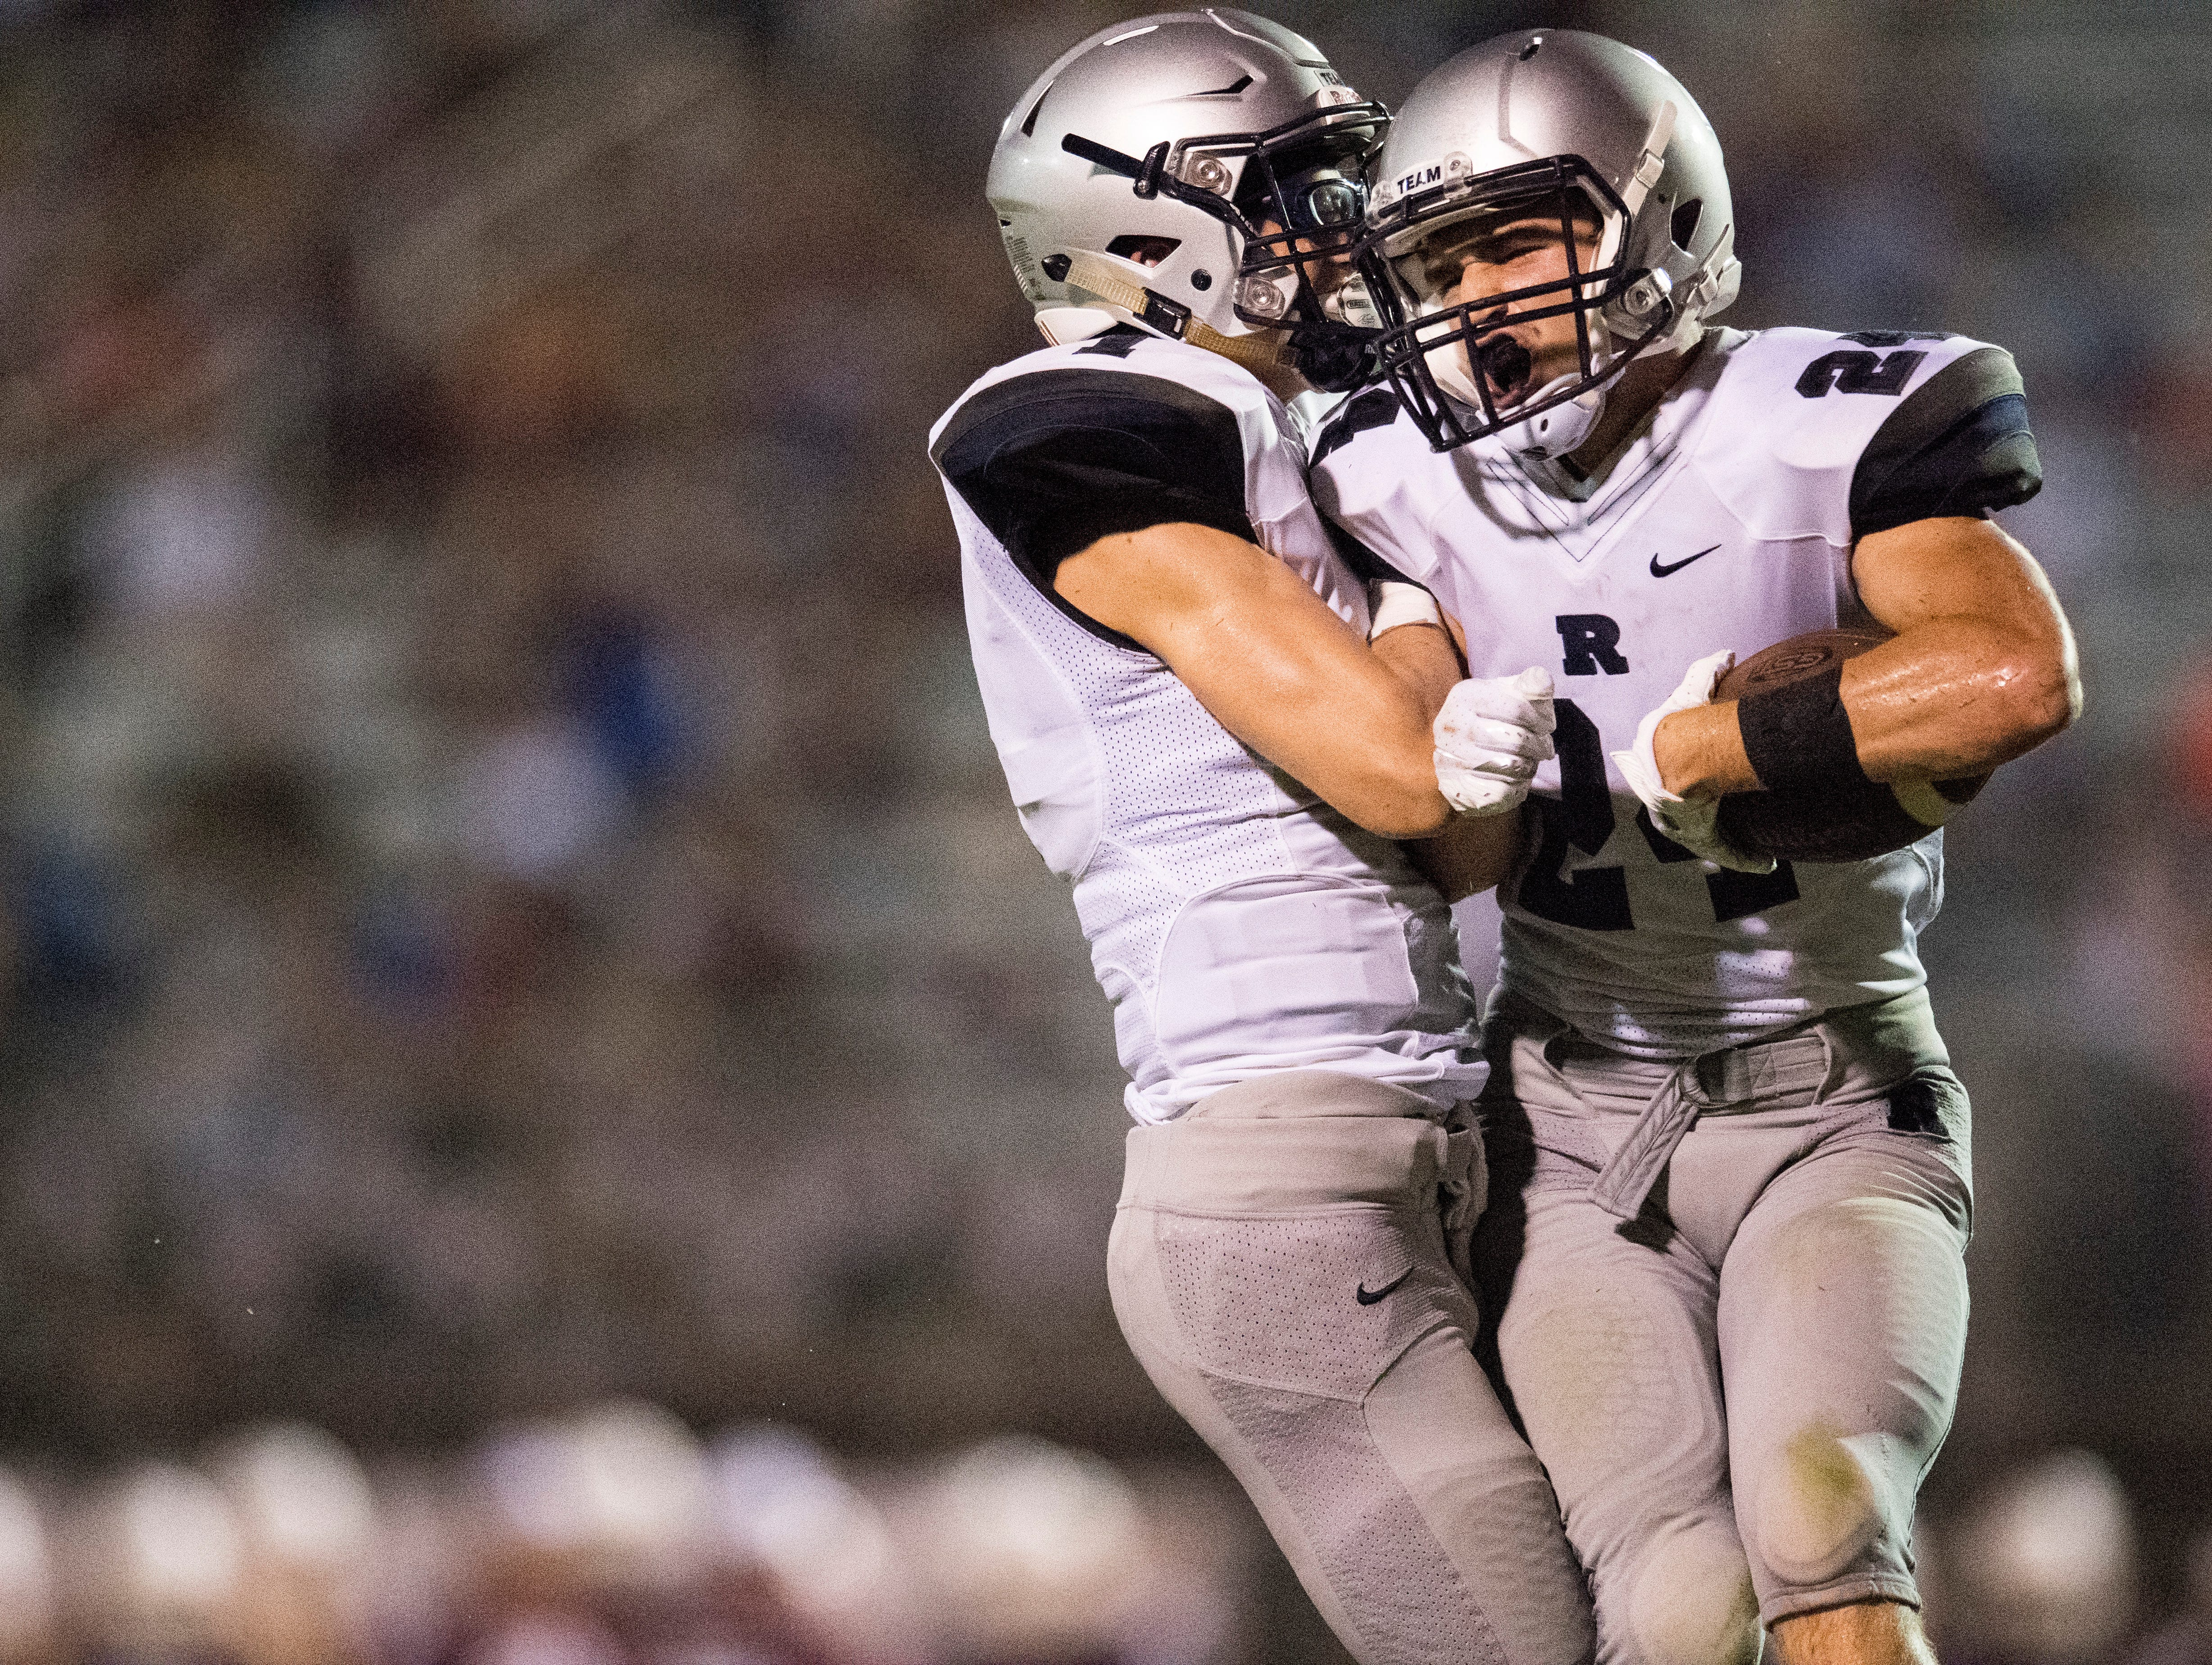 Reitz's Quarterback Eli Wiethop (1) celebrates with Reitz's Andrew Word (24) after a touchdown in the third quarter of Reitz vs Henderson County game at Colonel Stadium Friday, August 17, 2018. The Panthers defeated the Colonels 41-35 in the season opening game.